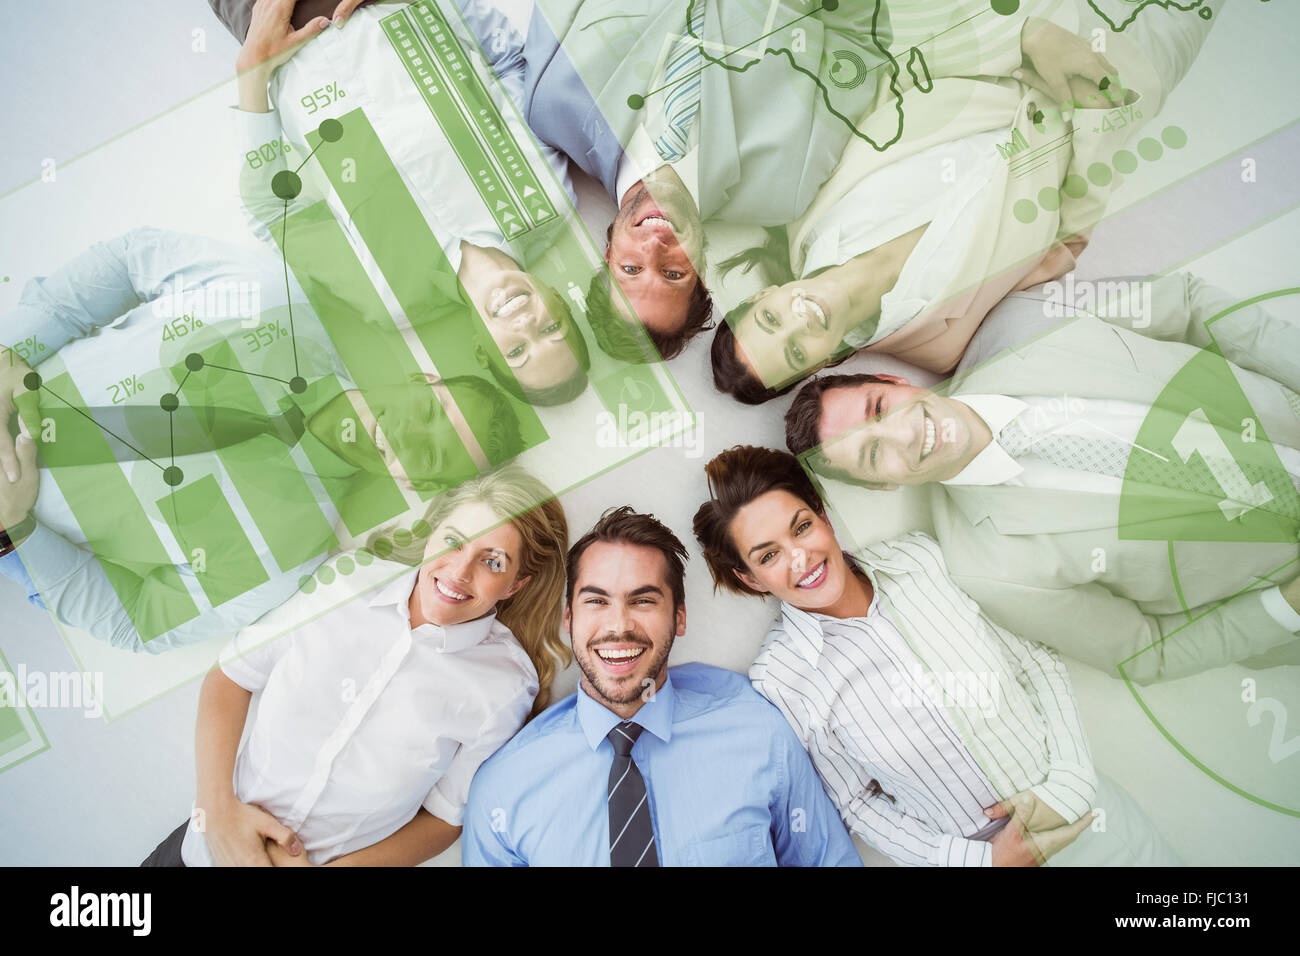 Composite image of young business people lying in circle - Stock Image